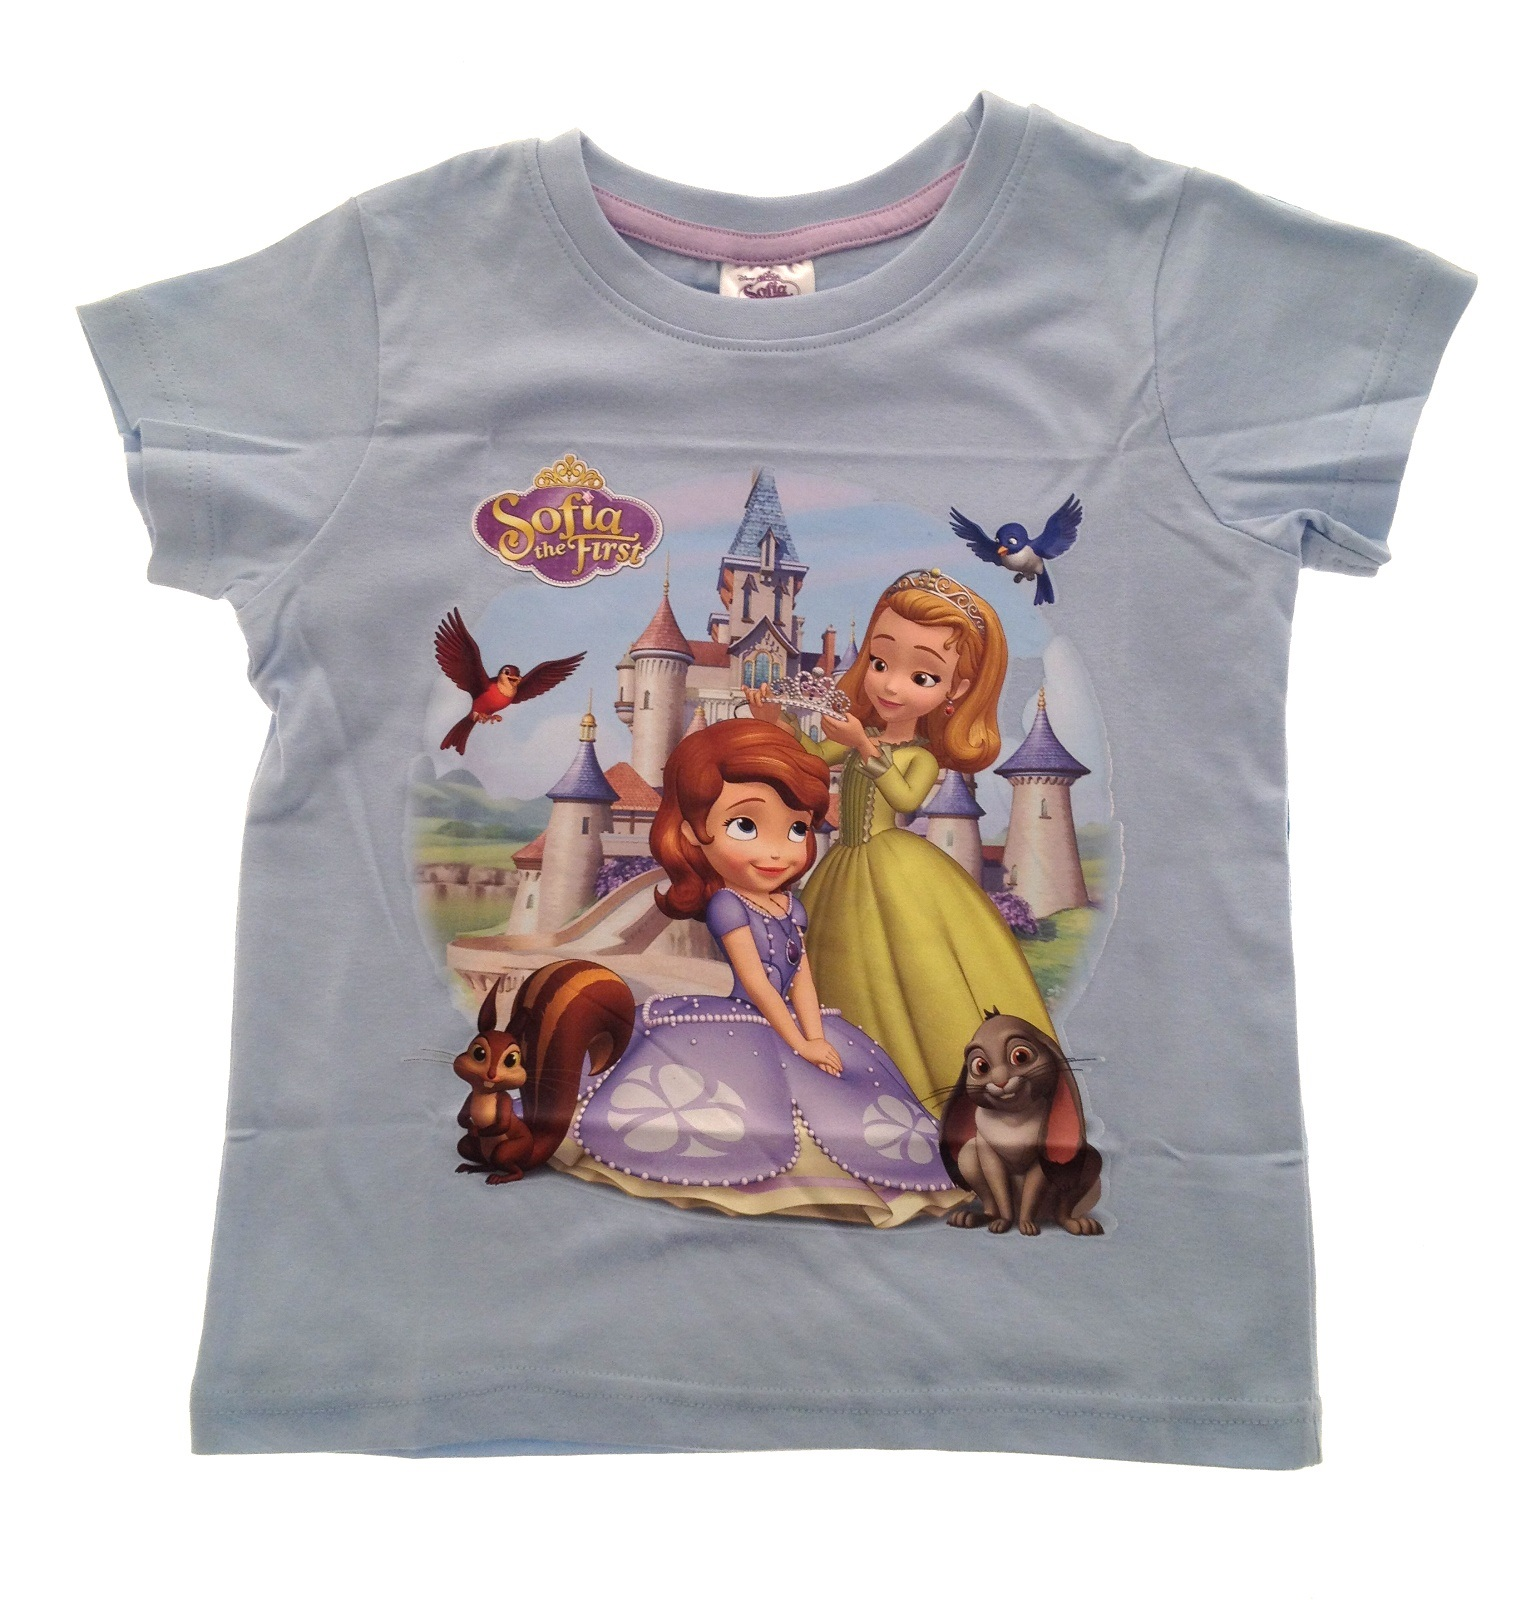 Girls-Disney-Princess-Sofia-The-First-Summer-Tops-T-Shirts-Size-UK-2-8-Years